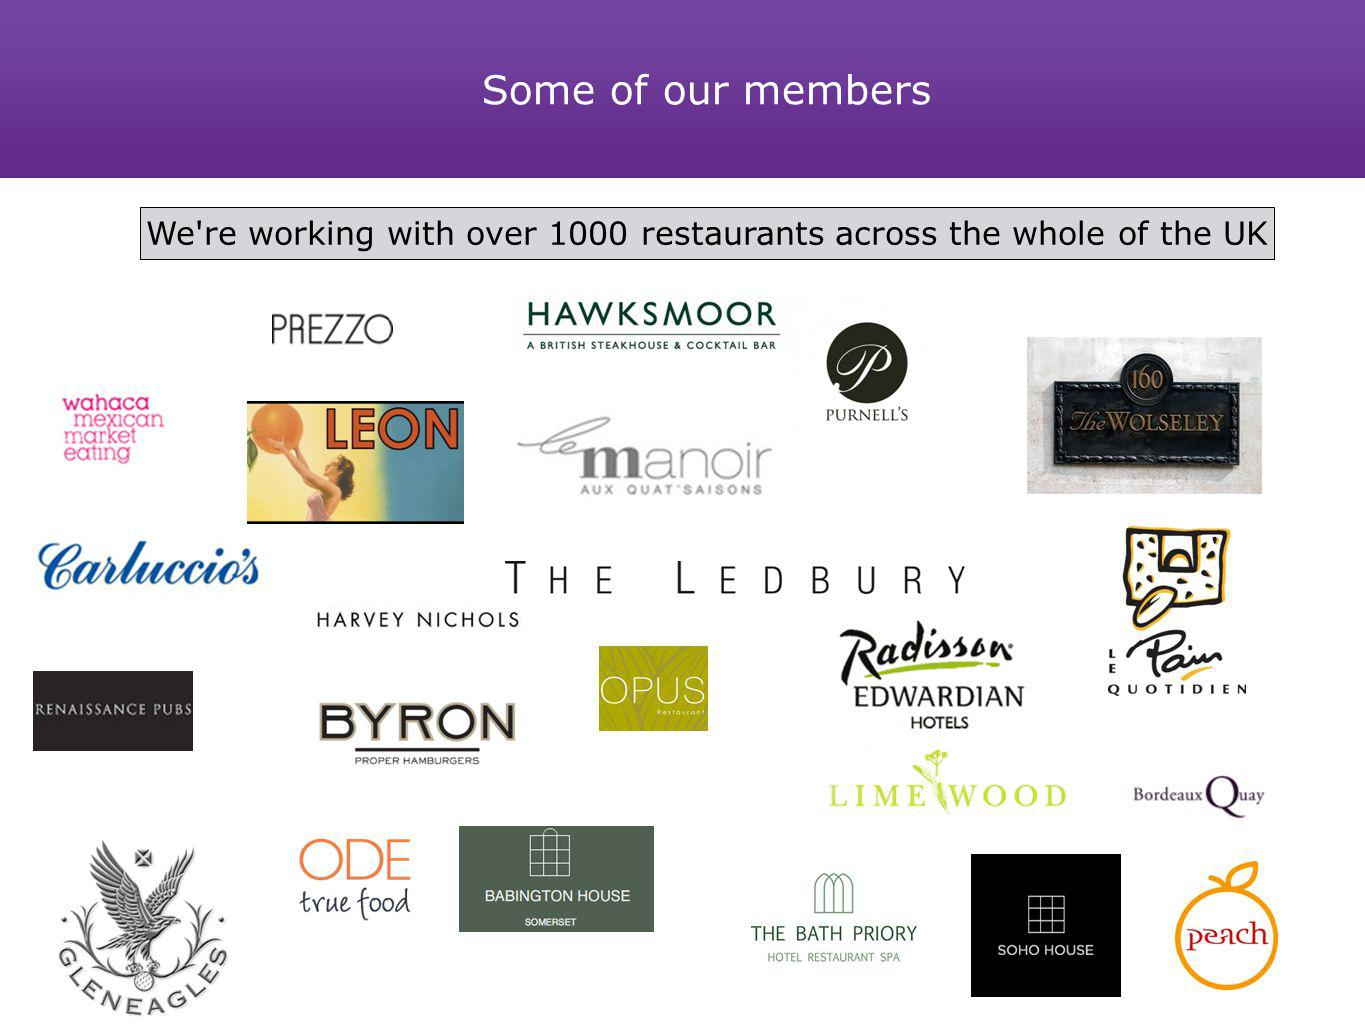 Some of our members We're working with over 1000 restaurants across the whole of the UK